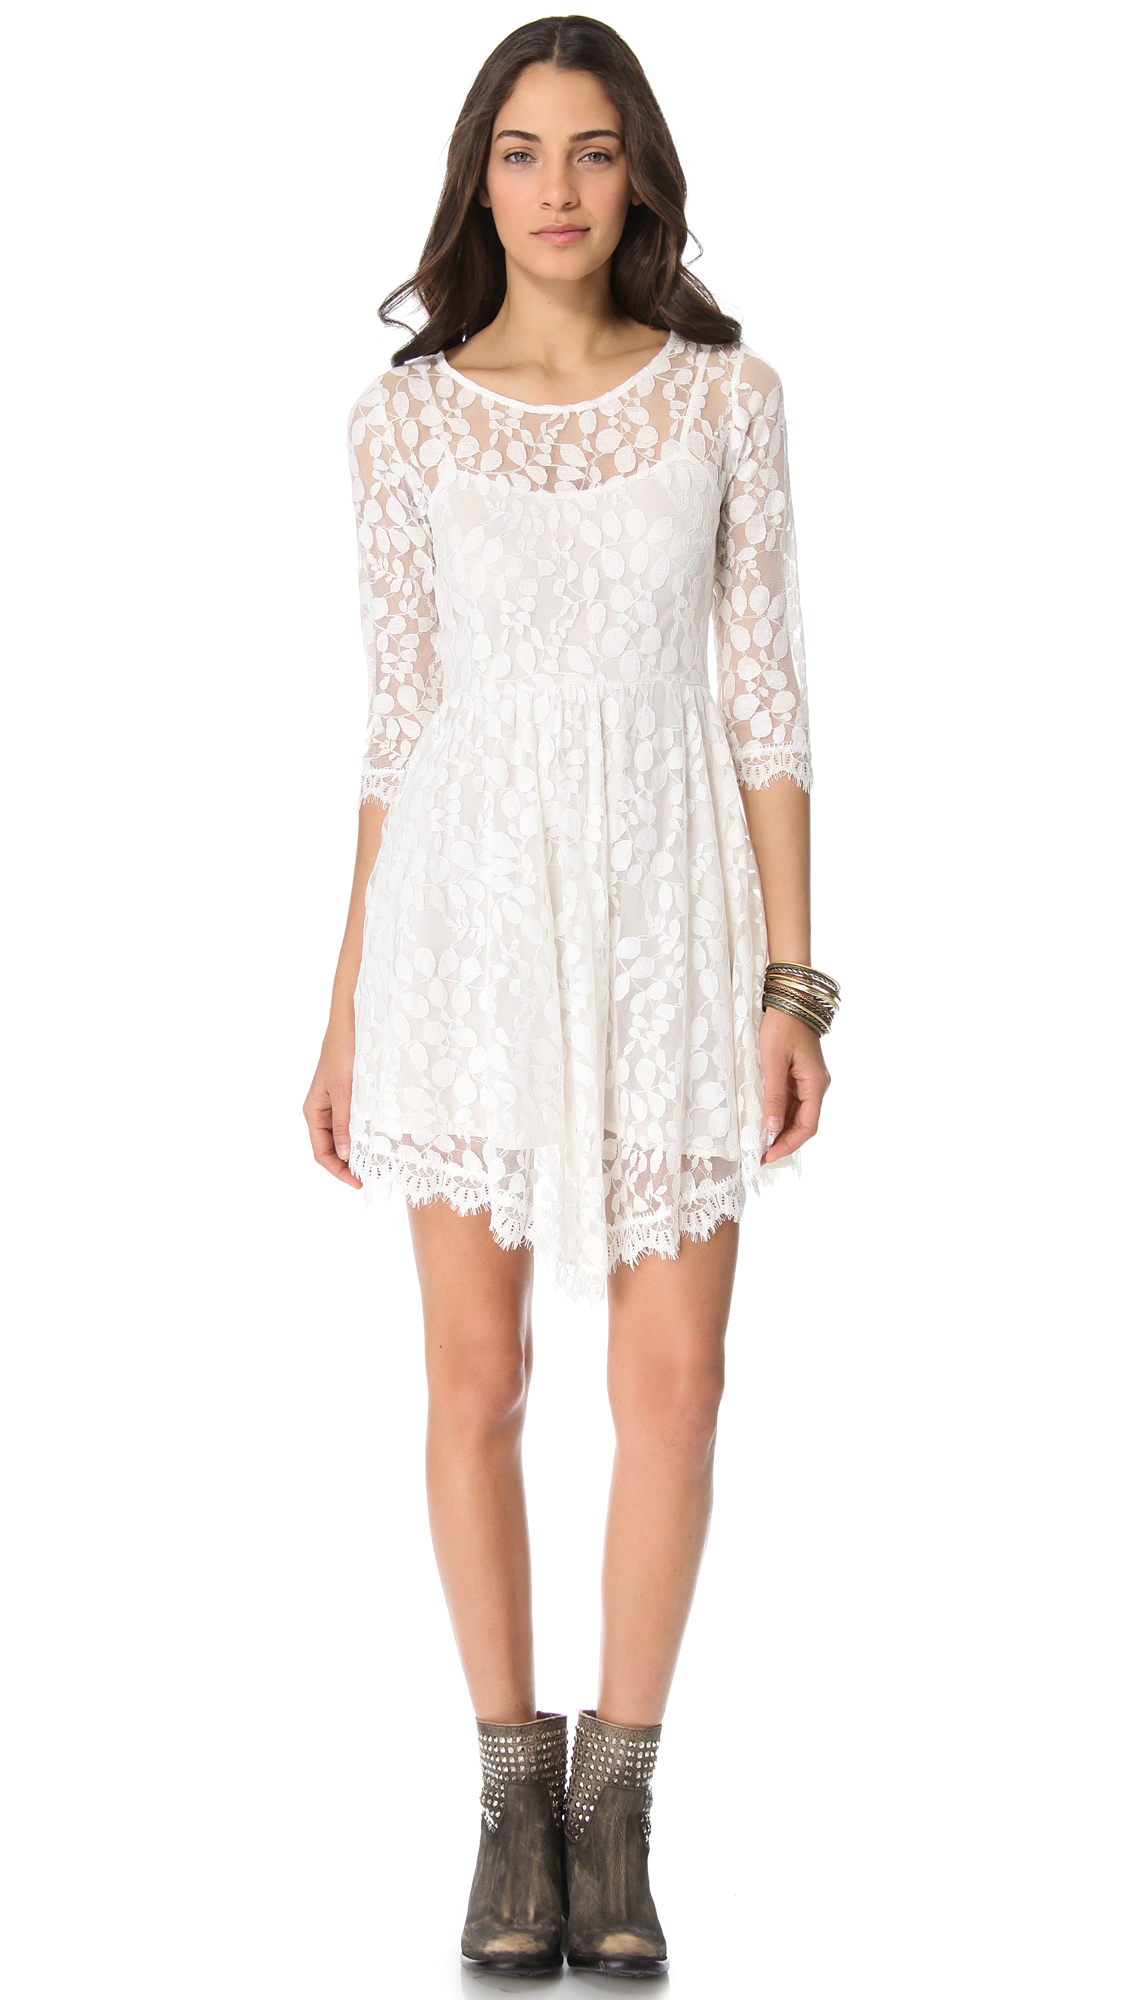 Free People Floral Mesh Lace Dress In White Lyst